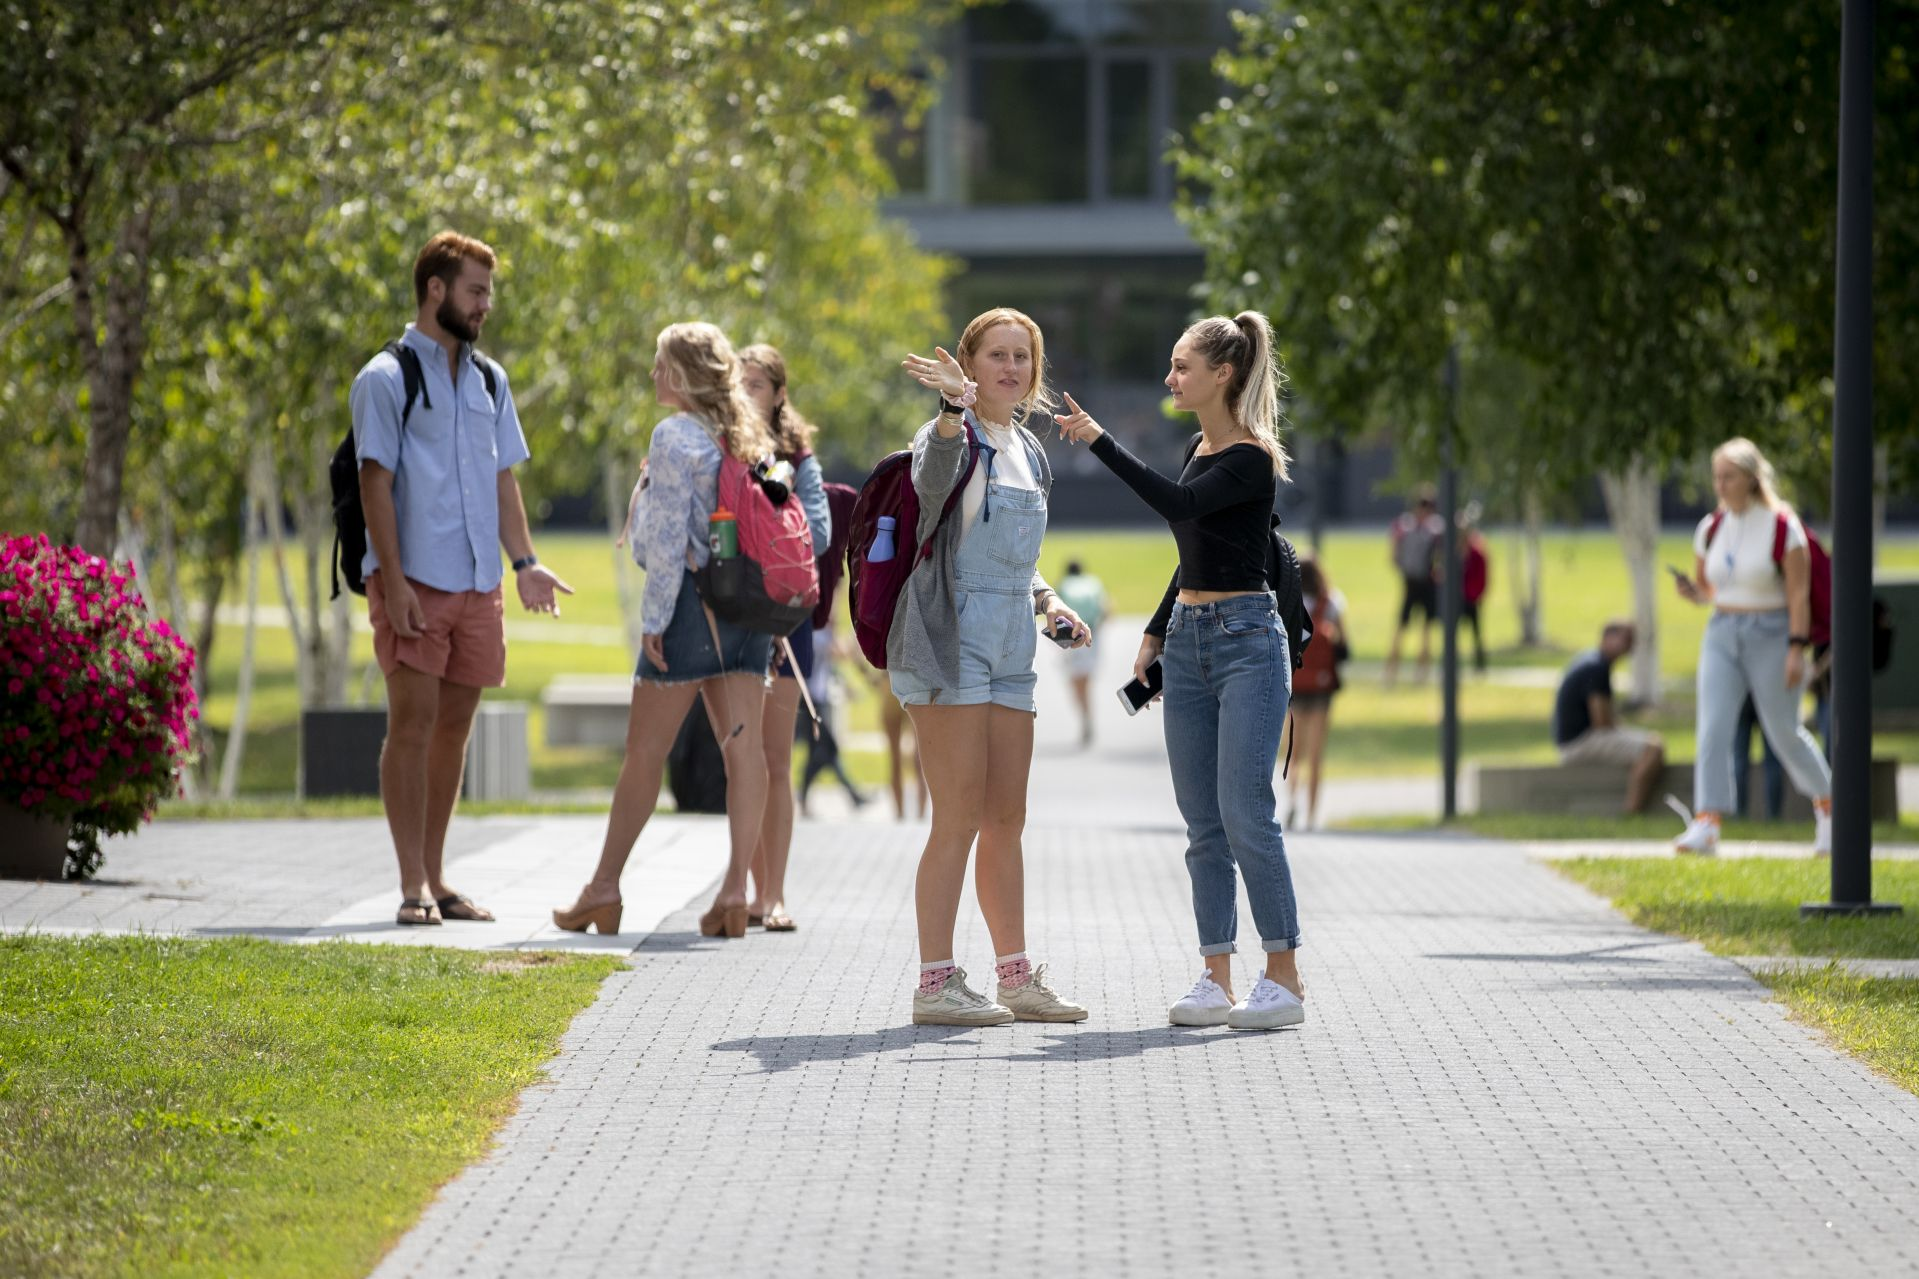 . On the first day of classes Daphne James '22 of Sausalito, Calif., greets classmates Anna Rozin of Ontario, Canada — and reminds her where Pettigrew Hall, the location of her next class, is. (Phyllis Graber Jensen/Bates College)